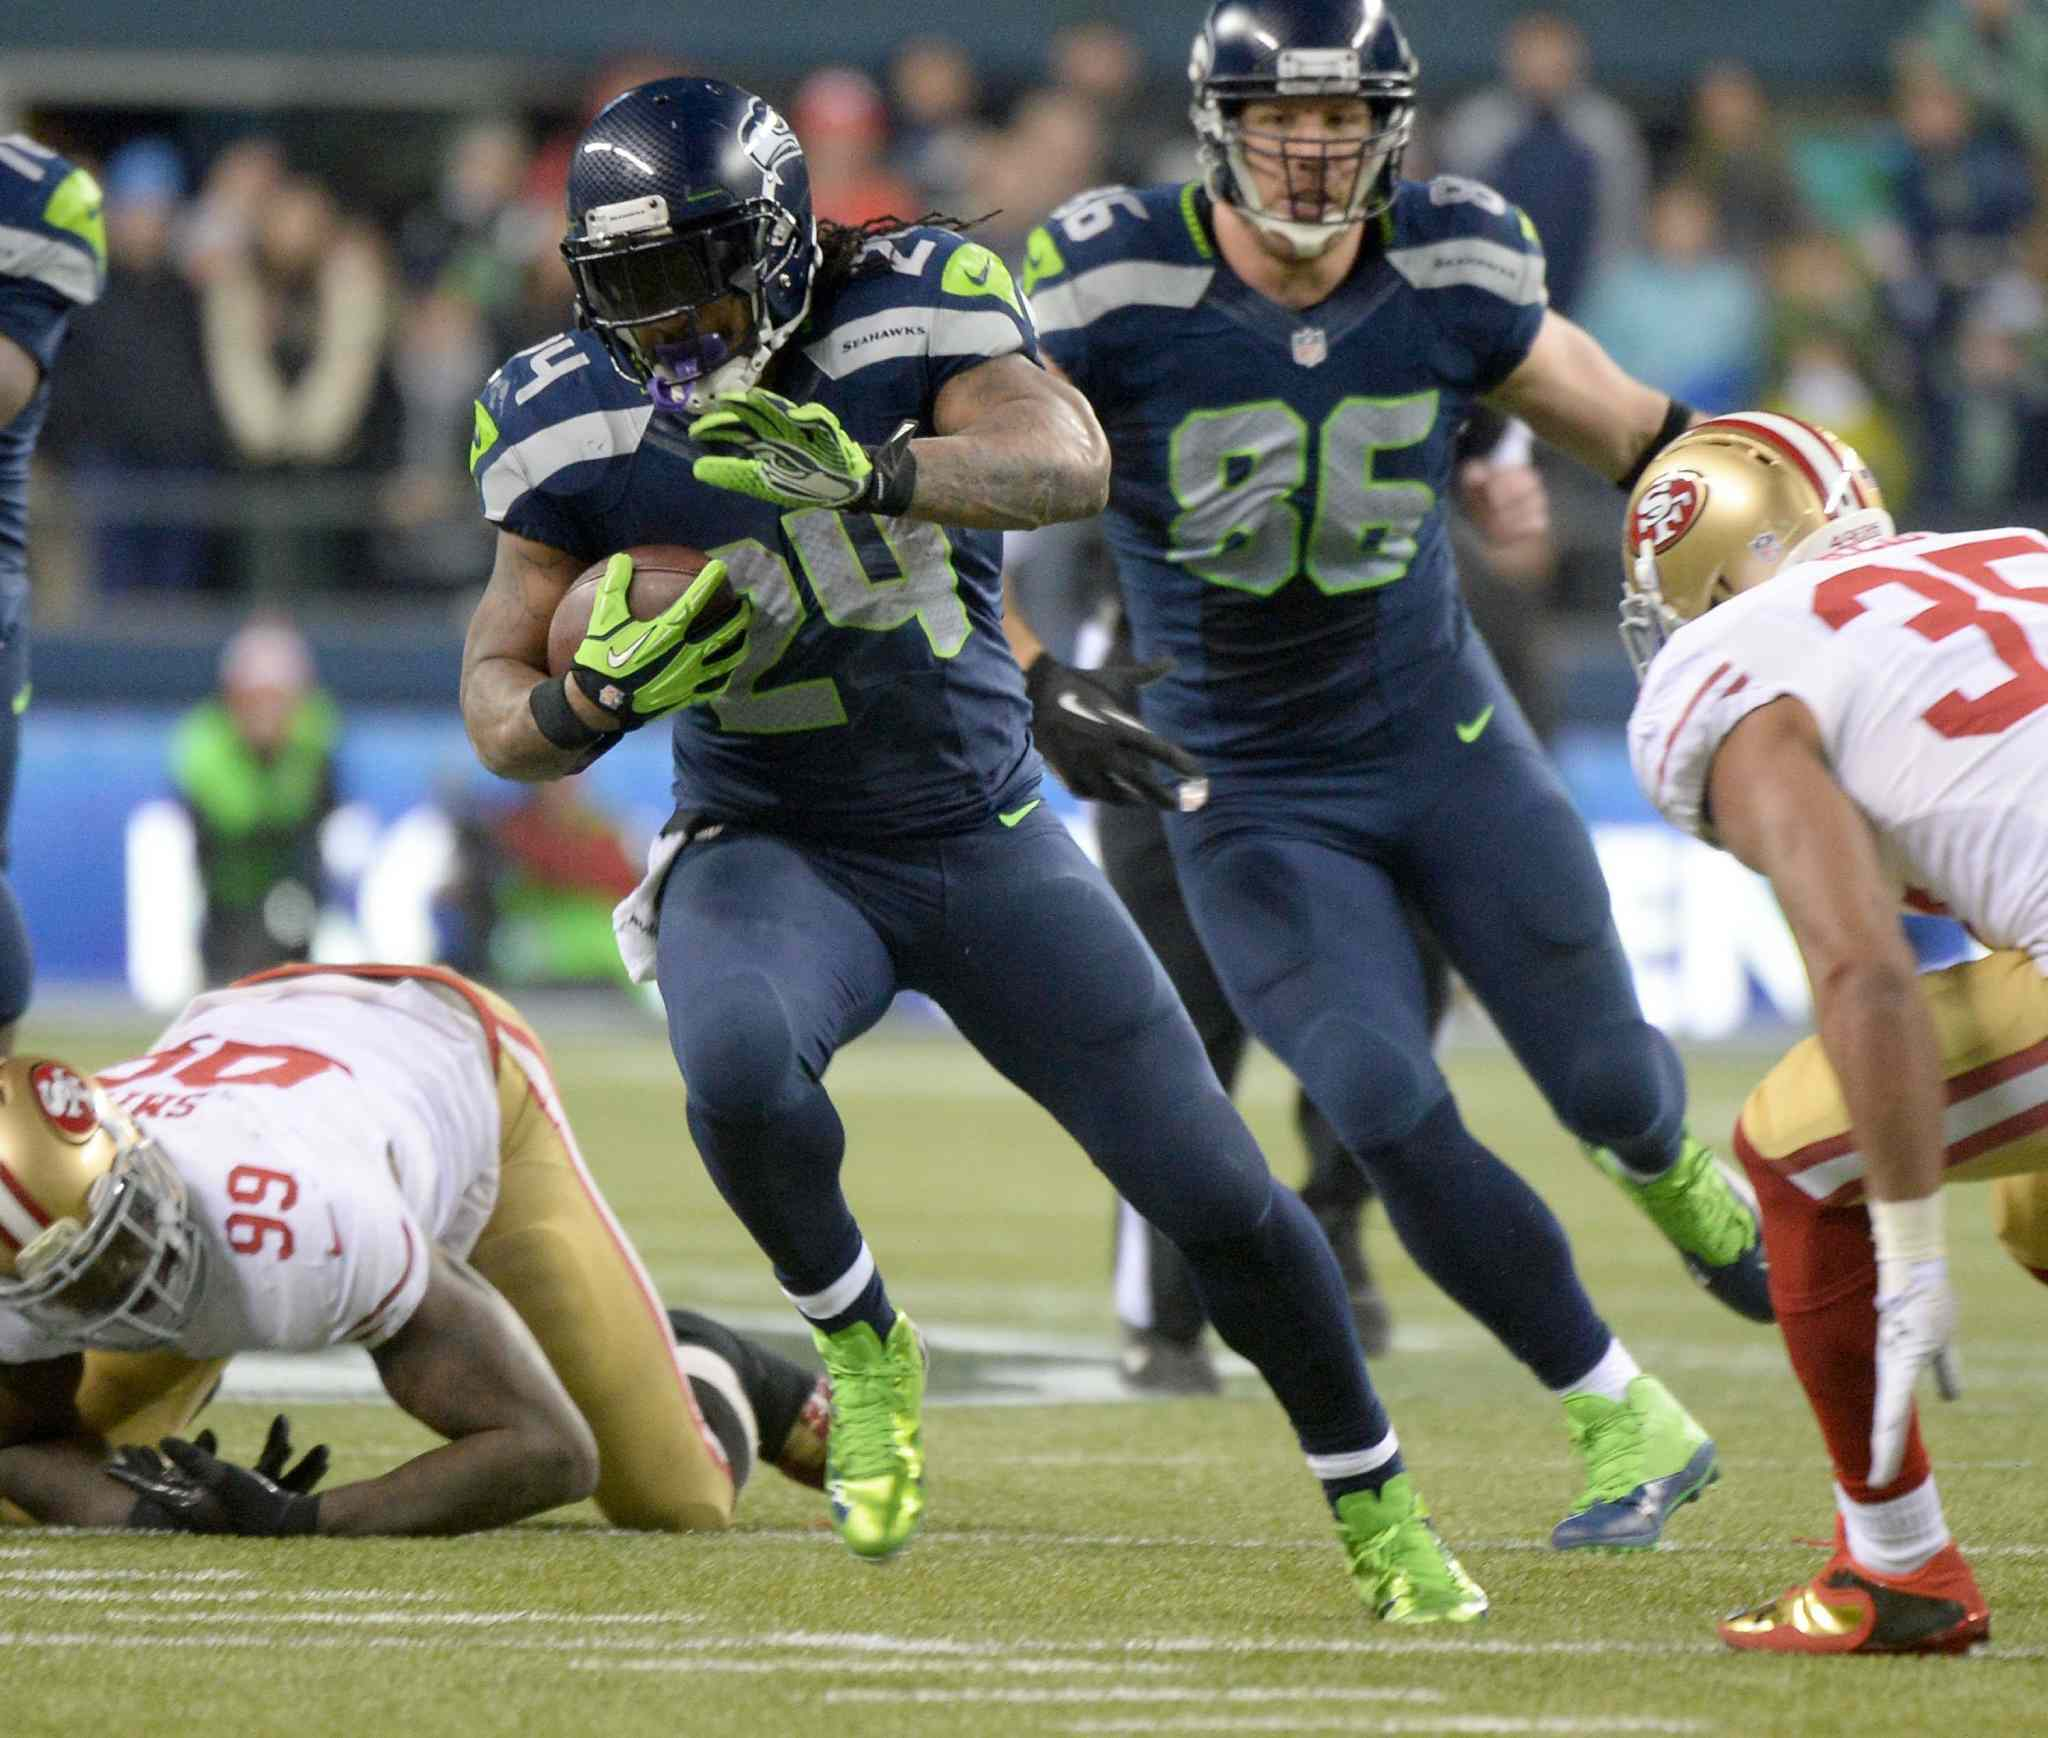 Seahawks running back Marshawn Lynch breaks for open ground on a 40-yard touchdown run.